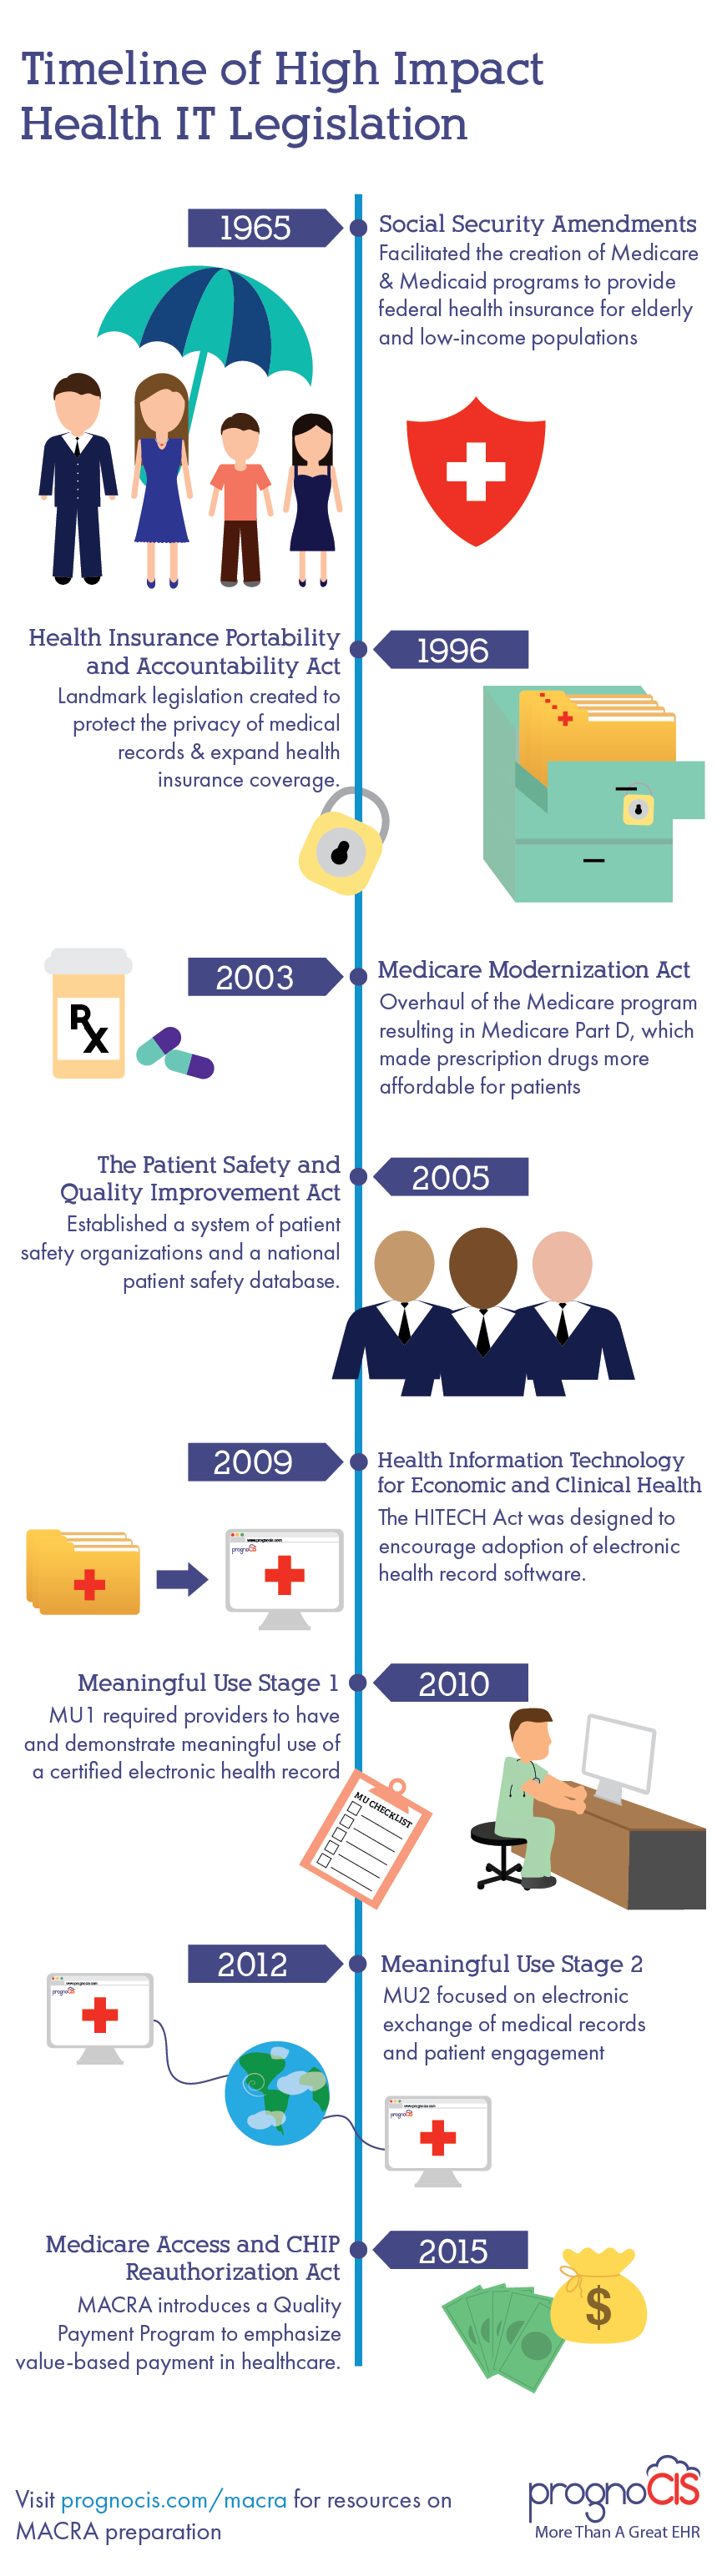 Health IT Legislation Timeline